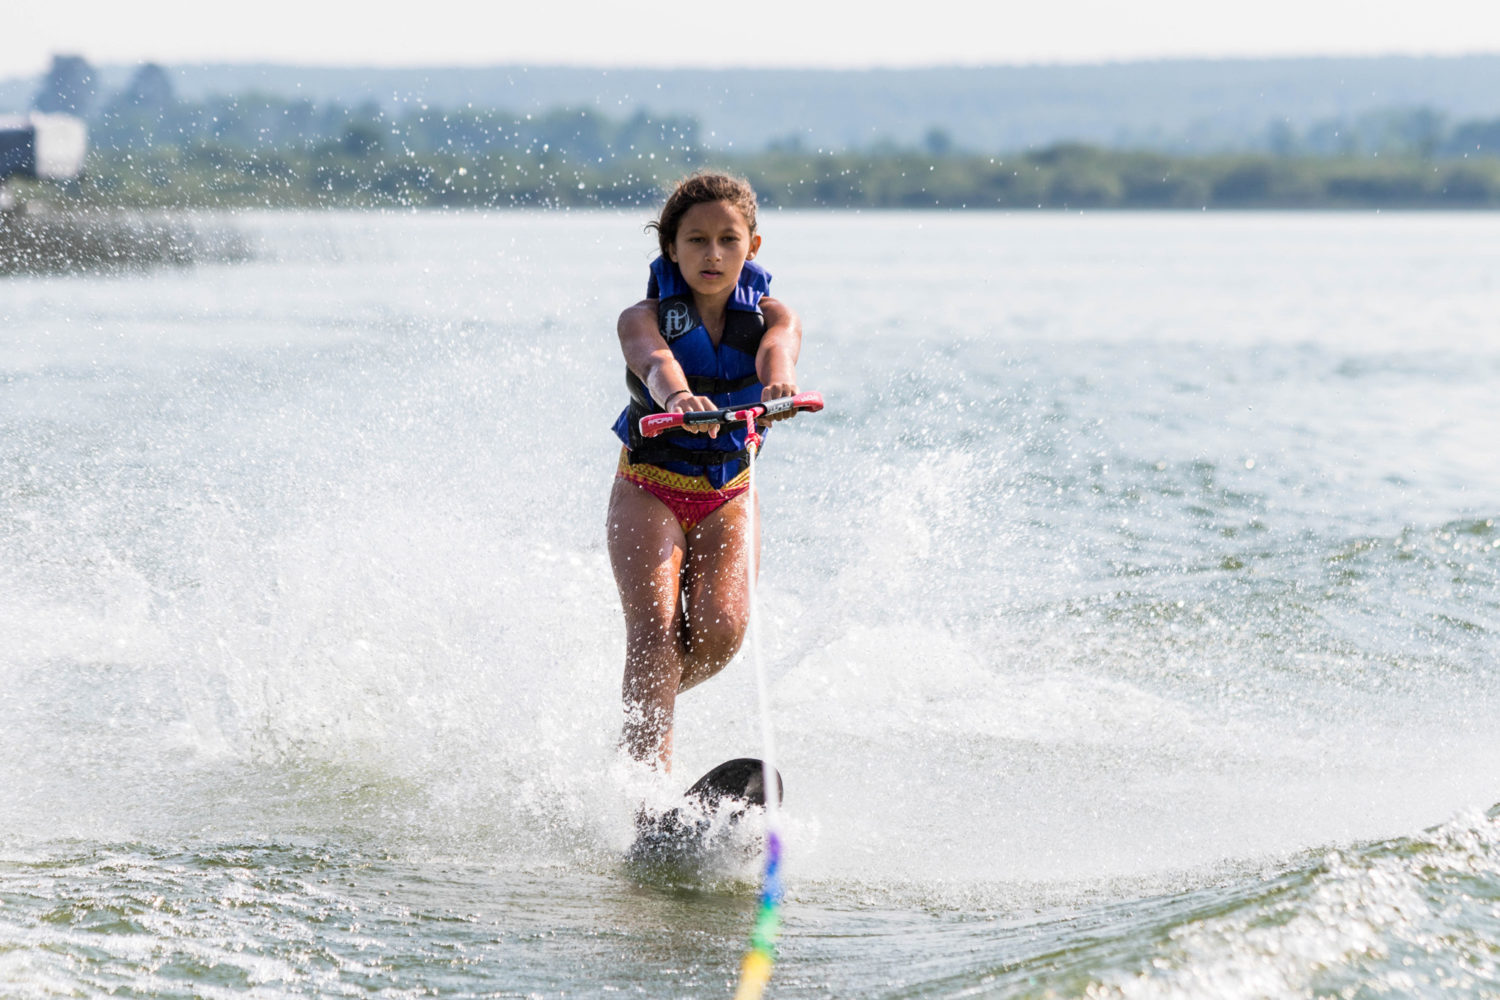 Girl water skiing on the lake